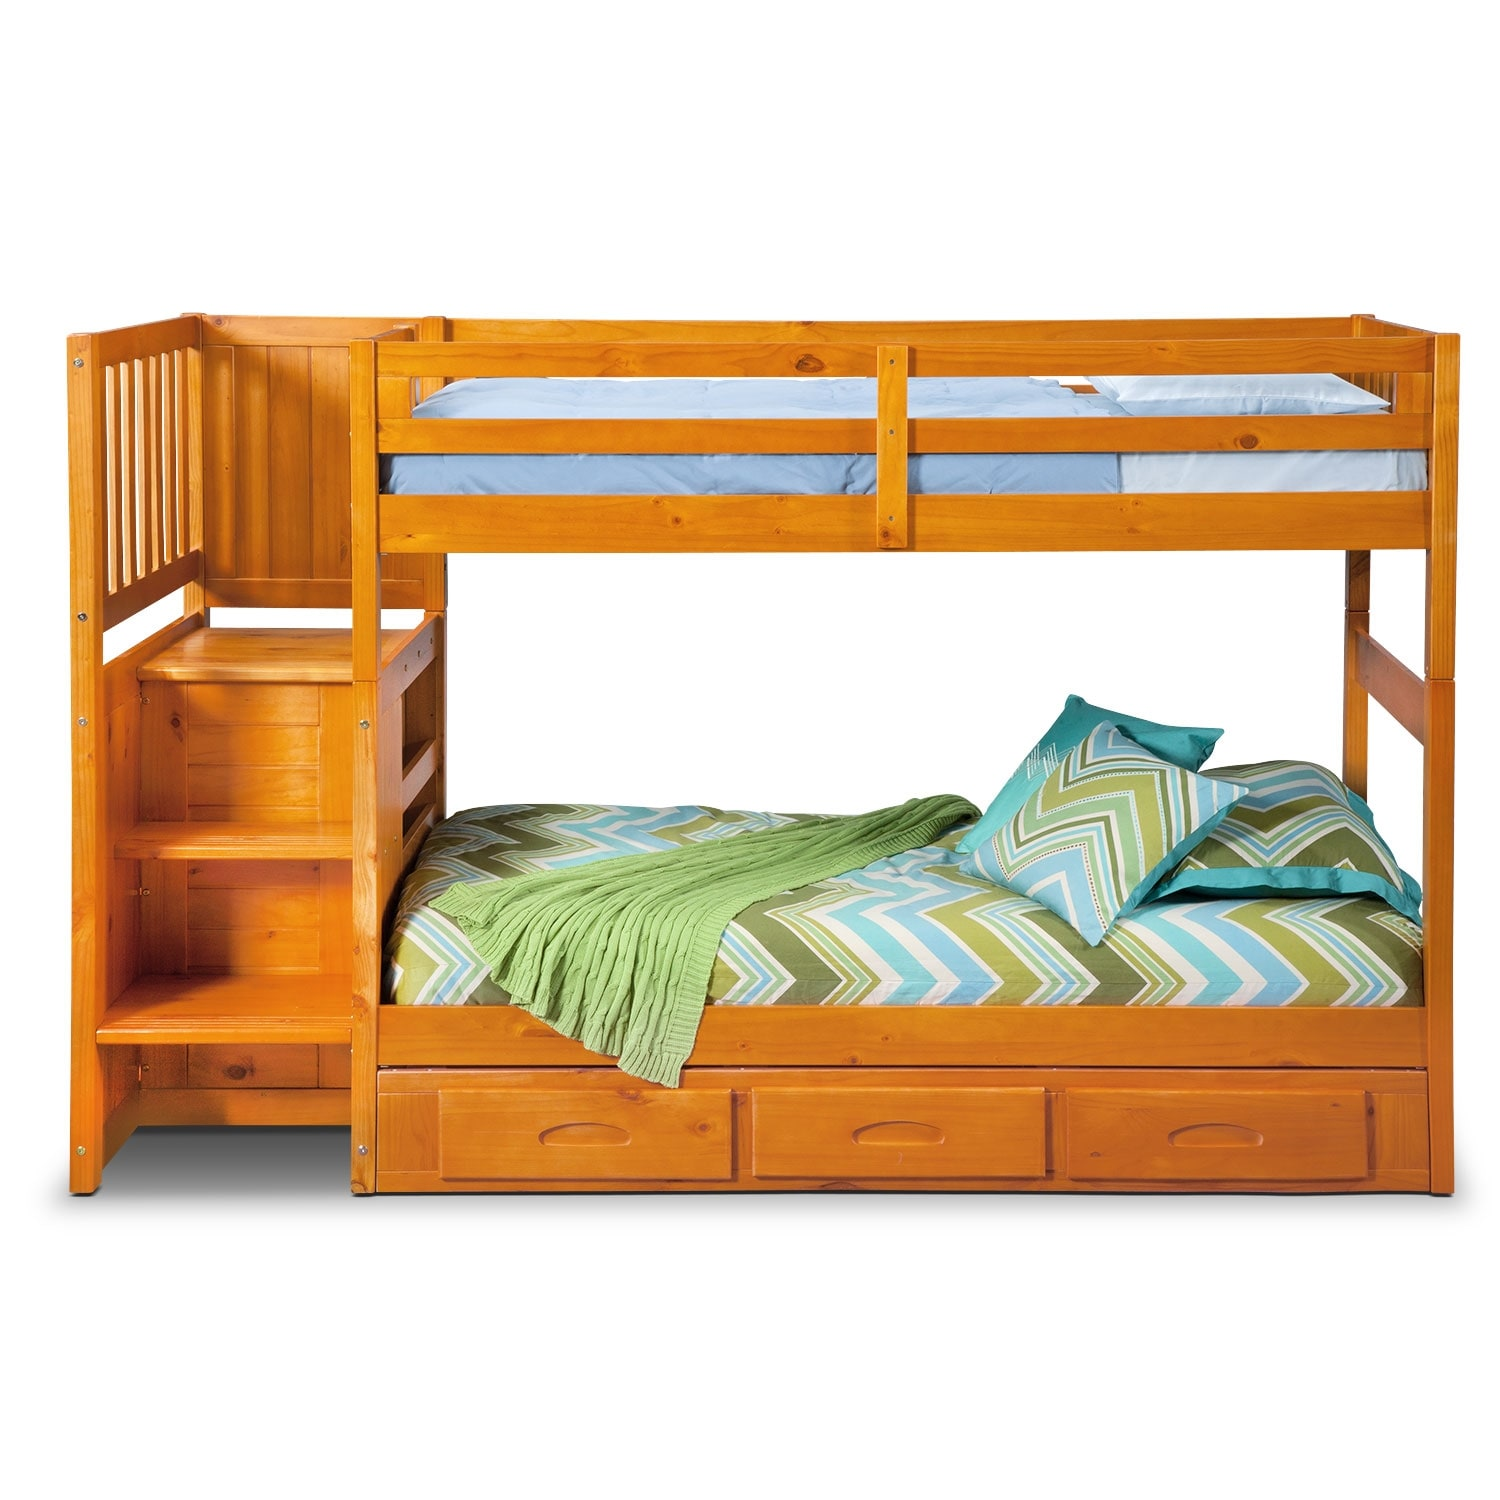 Ranger twin over twin bunk bed with storage stairs underbed drawers value city furniture - Bunkbeds with drawers ...